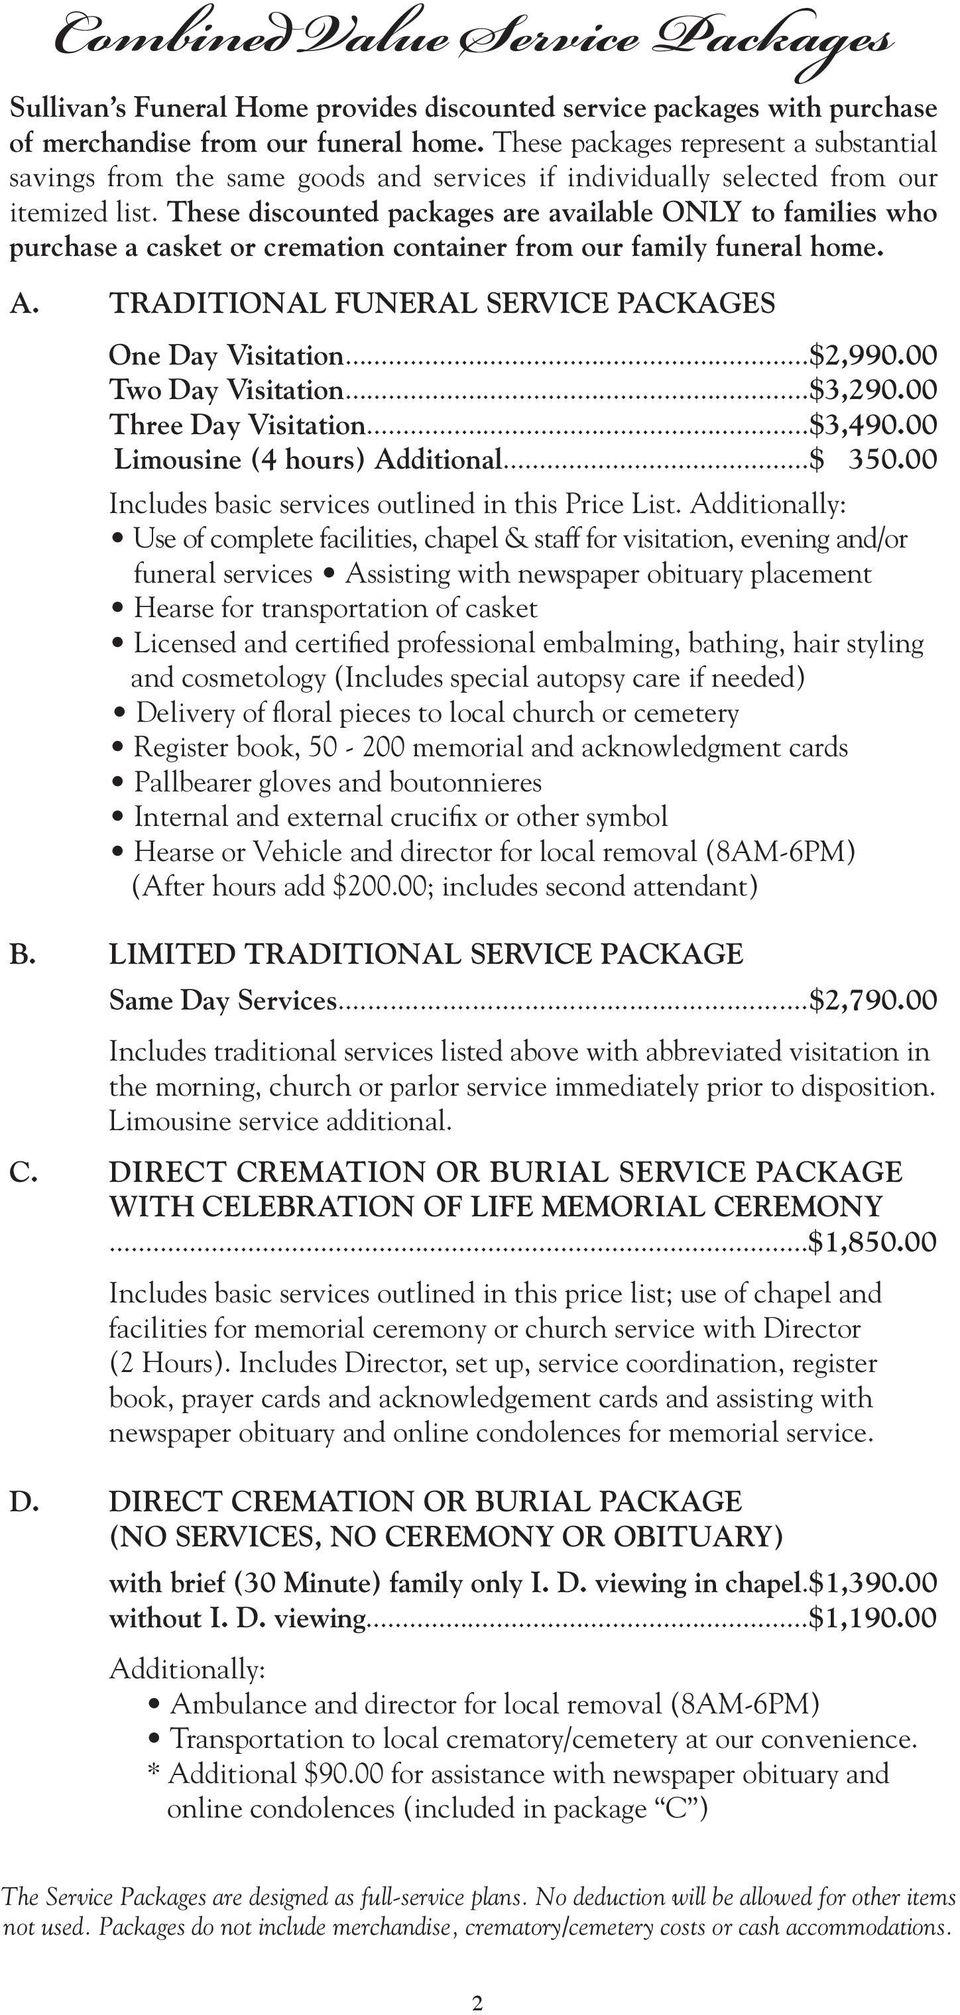 These discounted packages are available ONLY to families who purchase a casket or cremation container from our family funeral home. A. TRADITIONAL FUNERAL SERVICE PACKAGES One Day Visitation...$2,990.